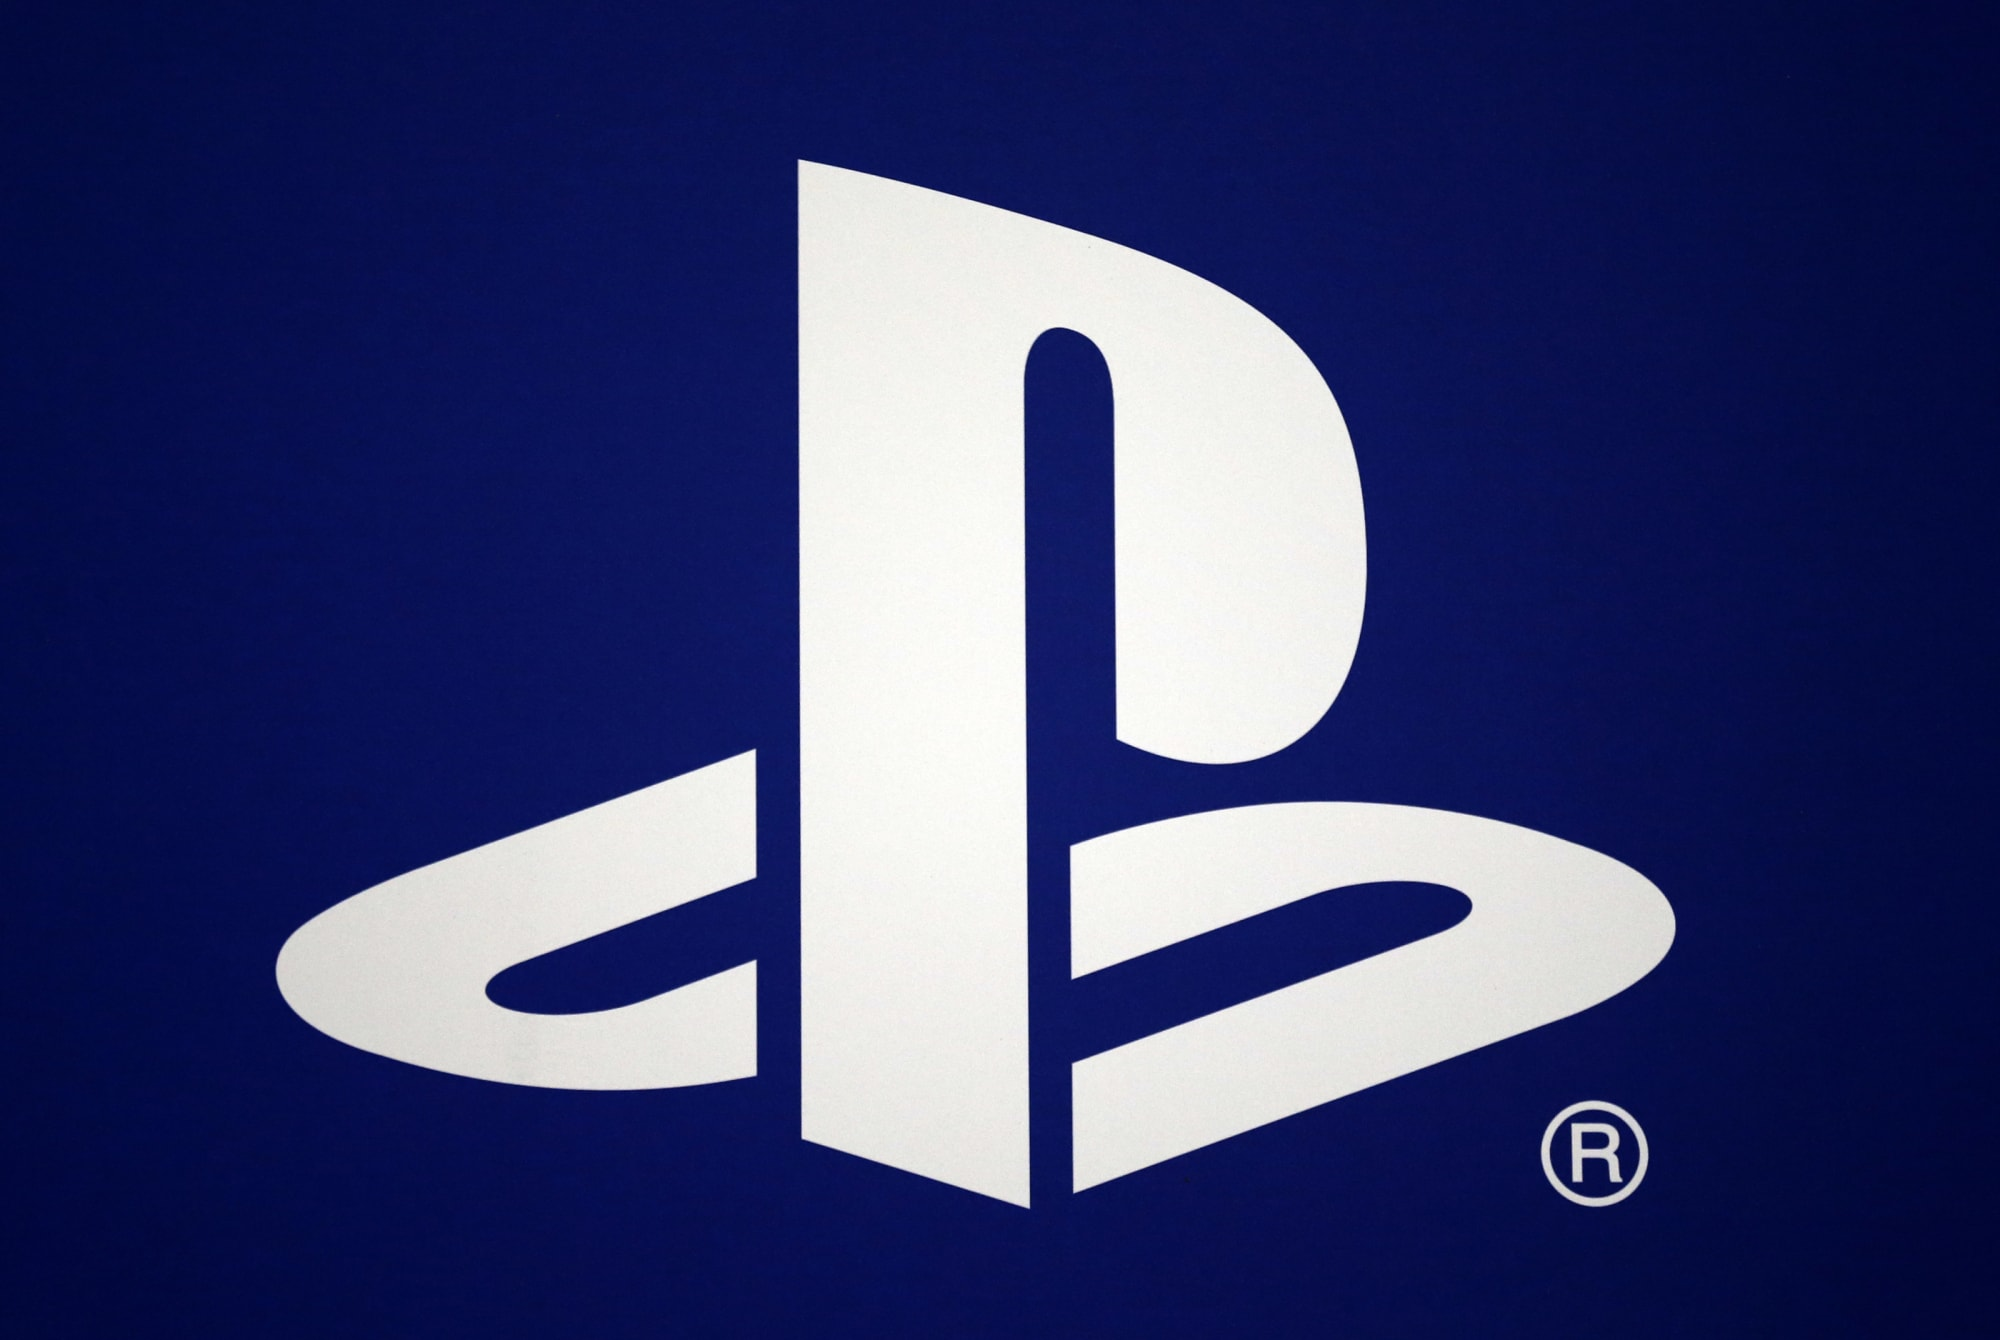 PS4 to PS5: Complete list of games with free next-gen upgrade to PlayStation 5